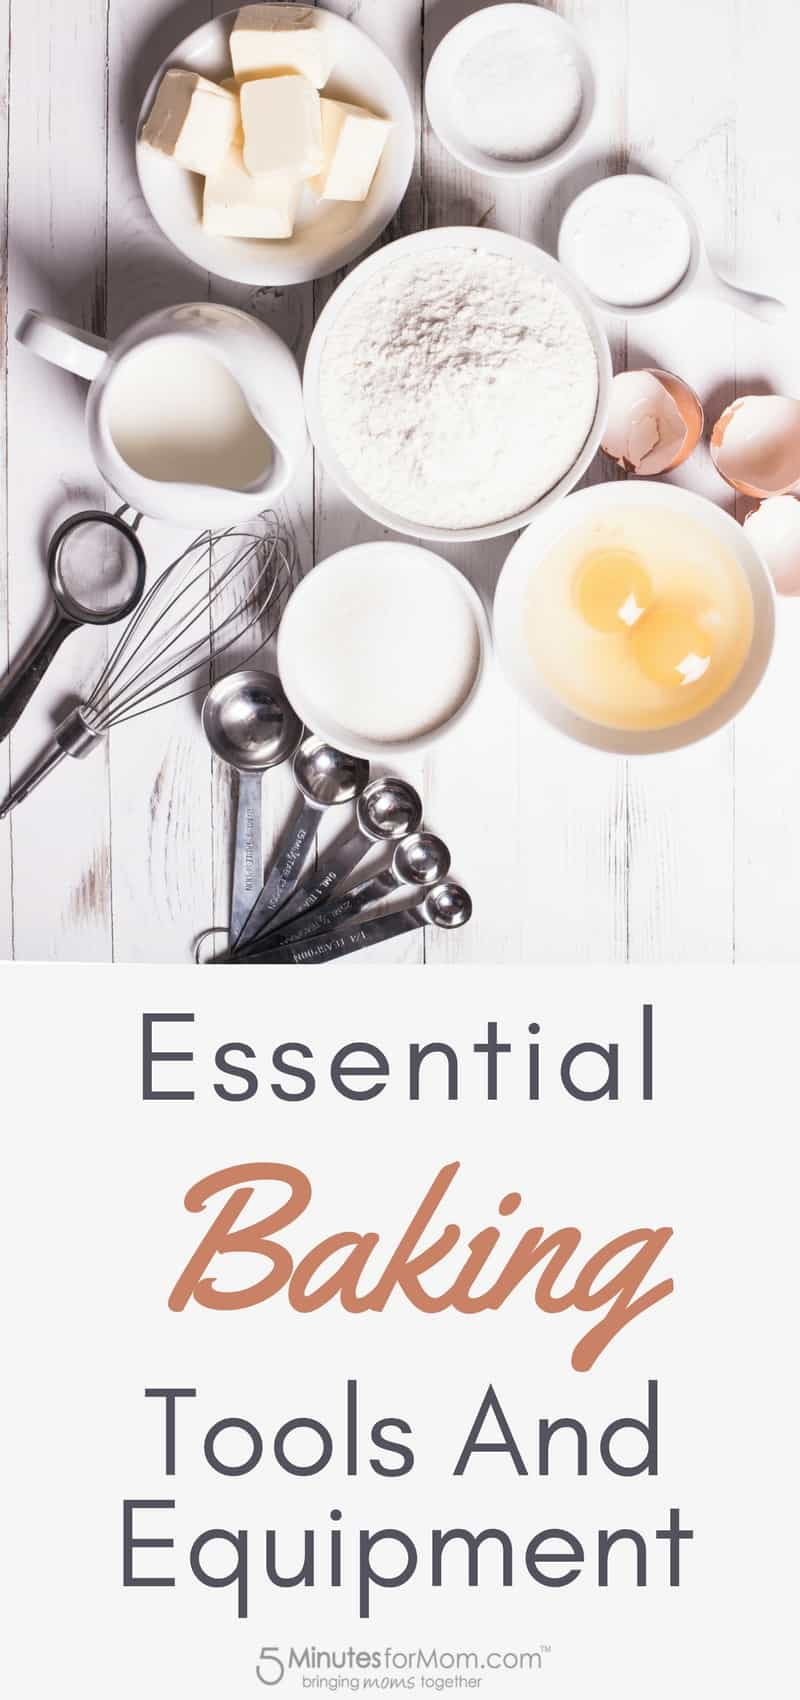 Essential Tools For Your Makeup Bag: Essential Baking Tools And Equipment